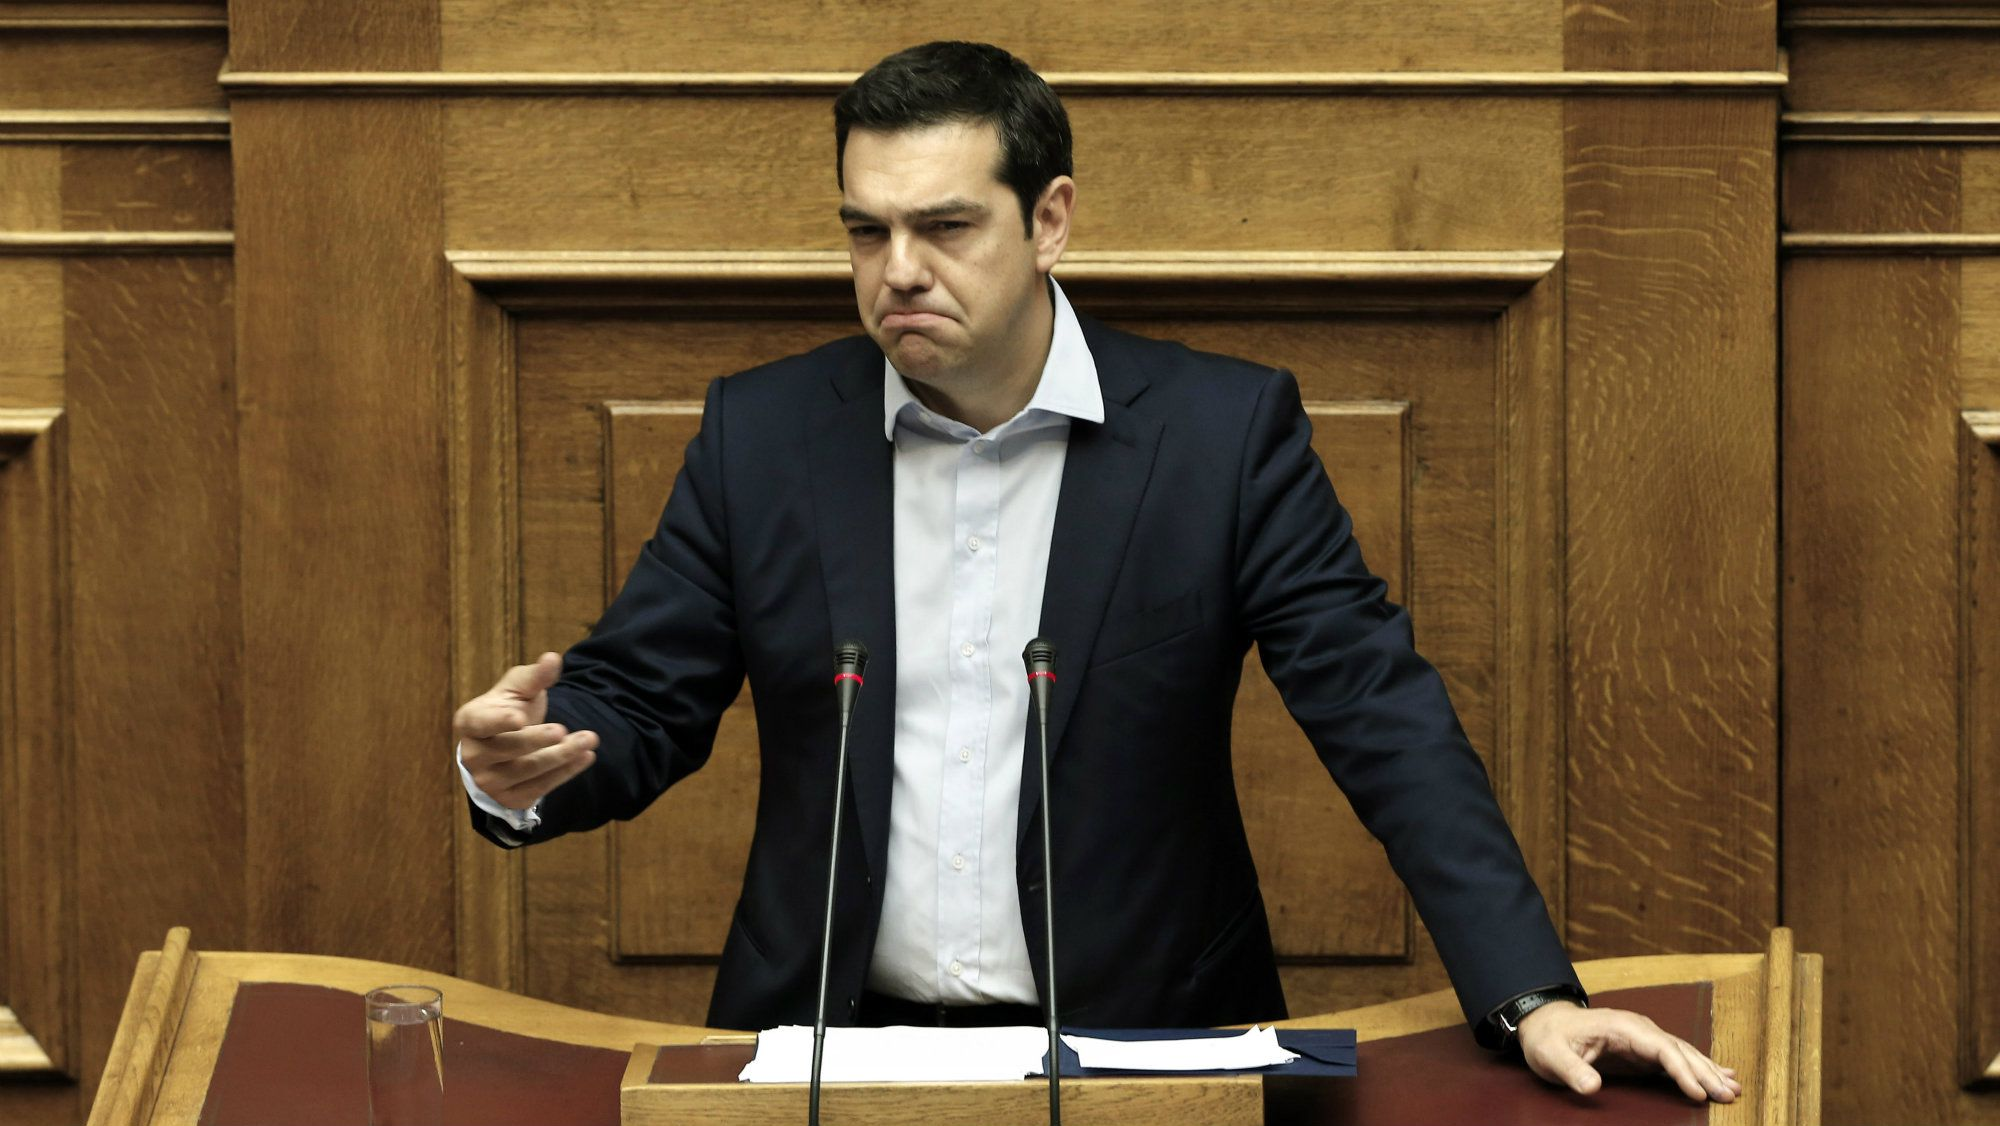 Greece's Prime Minister Alexis Tsipras delivers a speech to the lawmakers during an emergency Parliament session for the government's proposed referendum in Athens, Saturday, June 27, 2015.